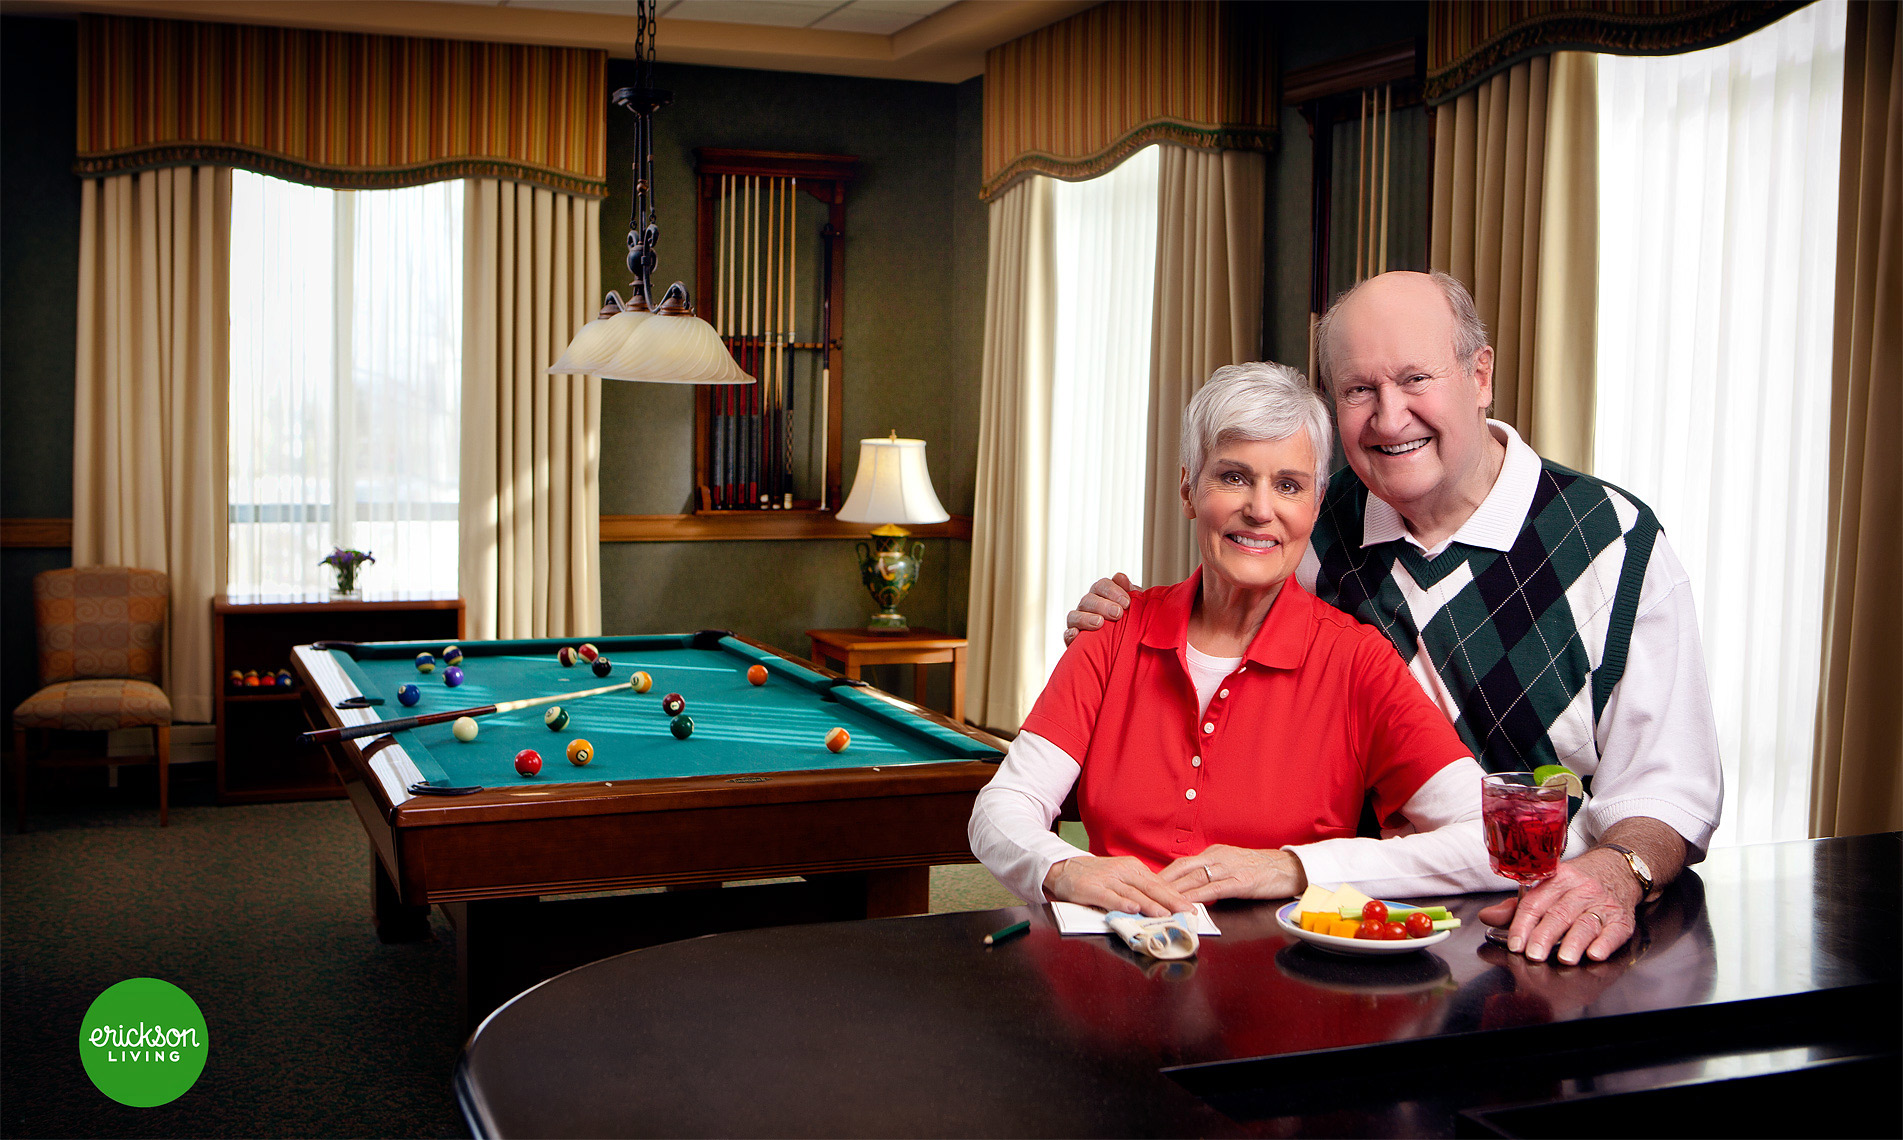 detroit-photographer-scott-stewart-commercial-lifestyle-portrait-for-senior-living-center